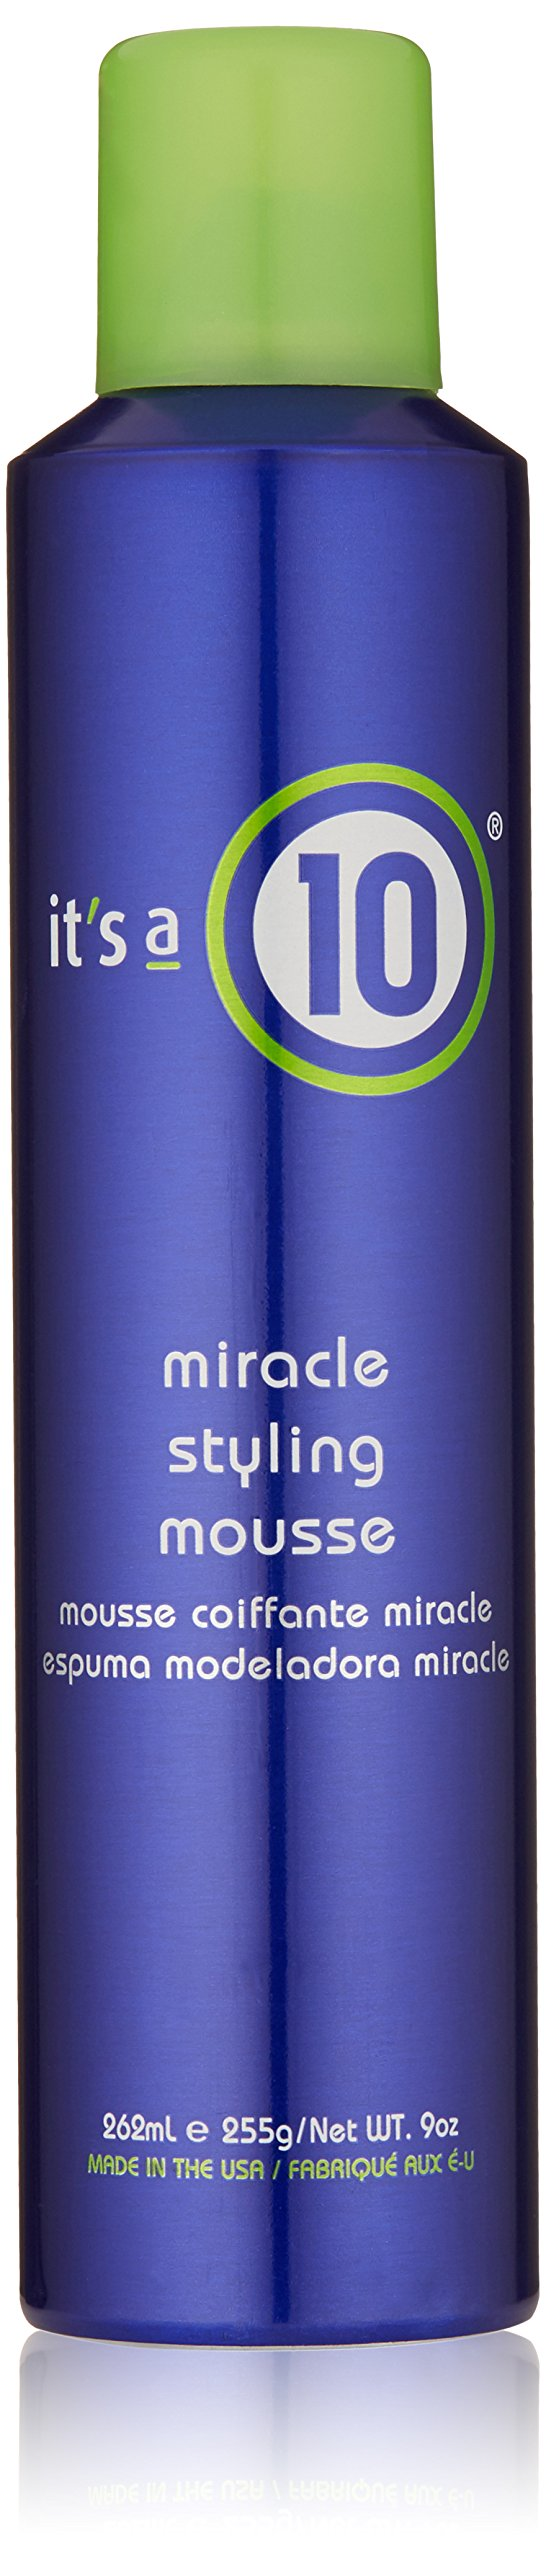 It's a 10 Haircare Miracle Styling Mousse, 9 fl. oz. by It's a 10 Haircare (Image #1)